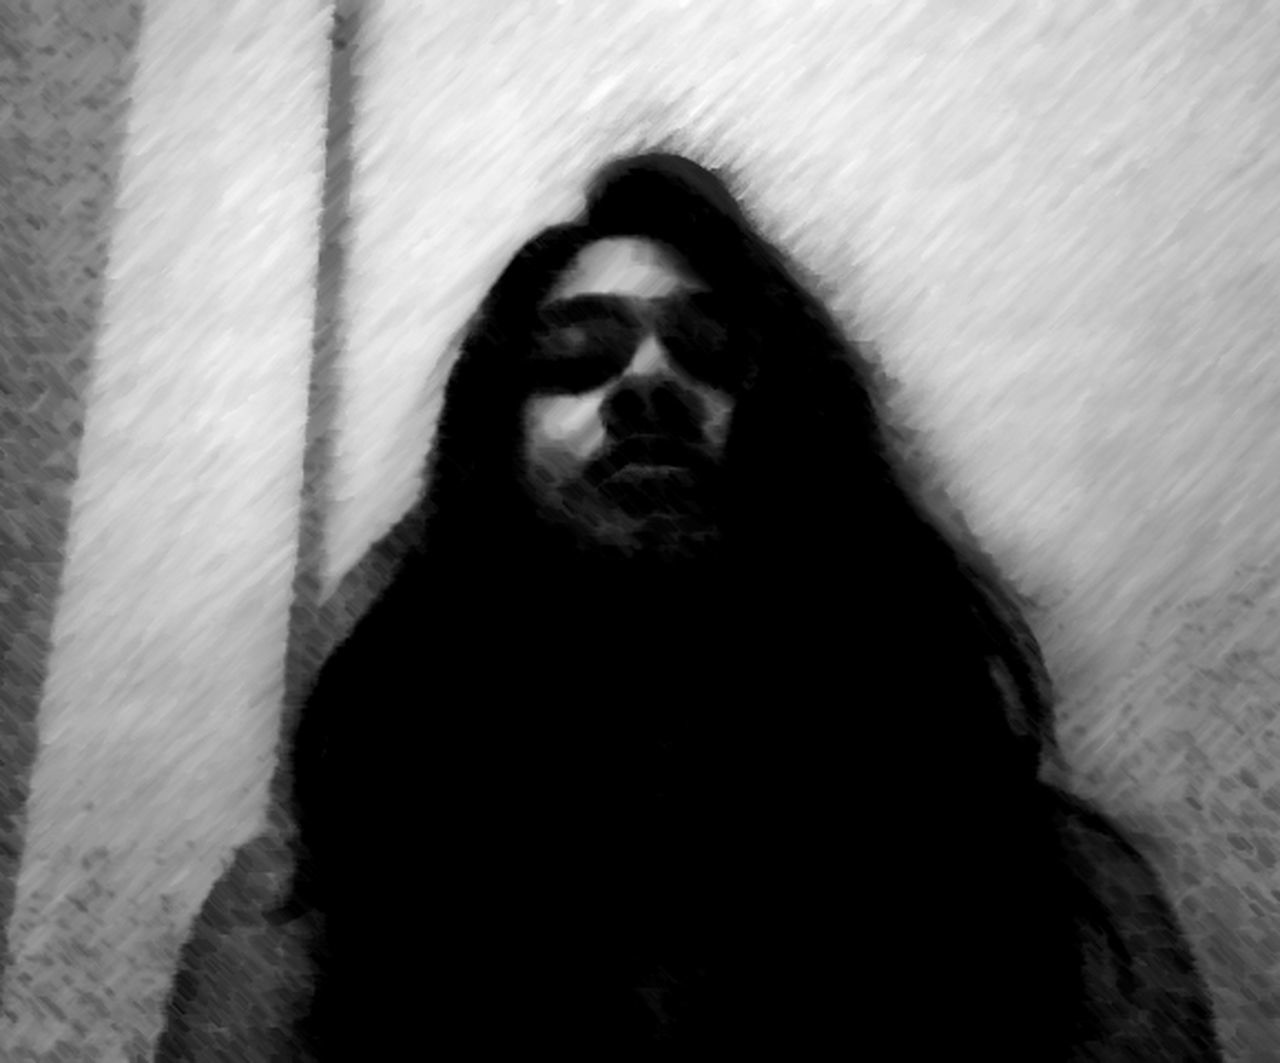 Thats Me! Black And White Eerie Dark Photography Artist Long Hair, Don't Care. High Life A State Of Trance